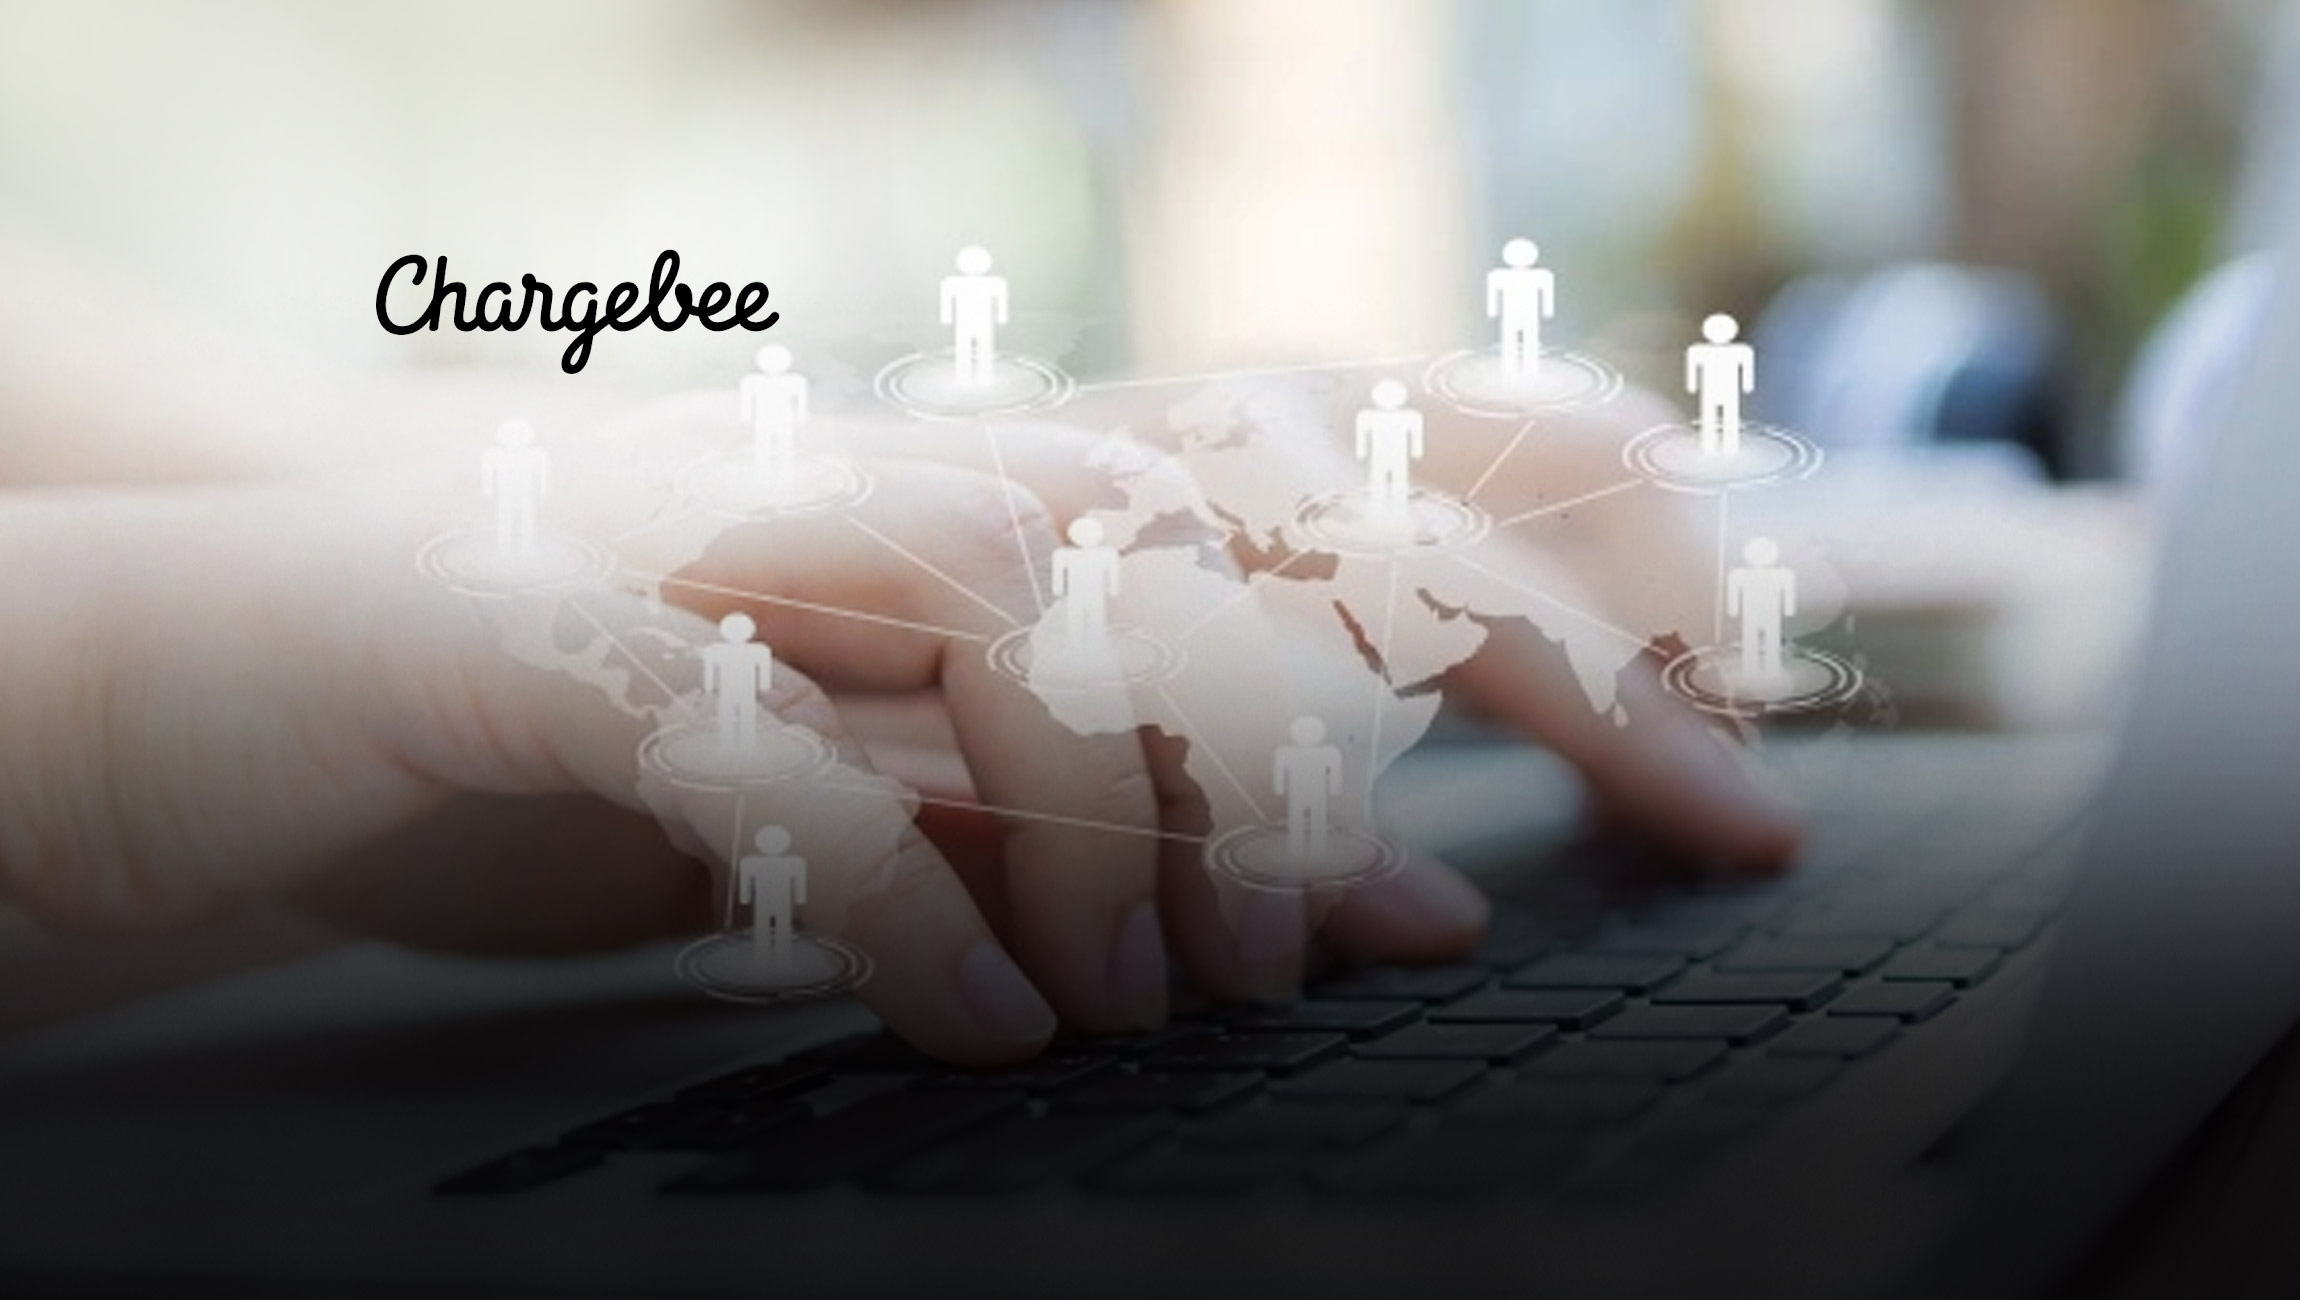 Chargebee-Announces-its-Fall-2020-Product-Release-to-solve-for-Complex-Business-Workflows